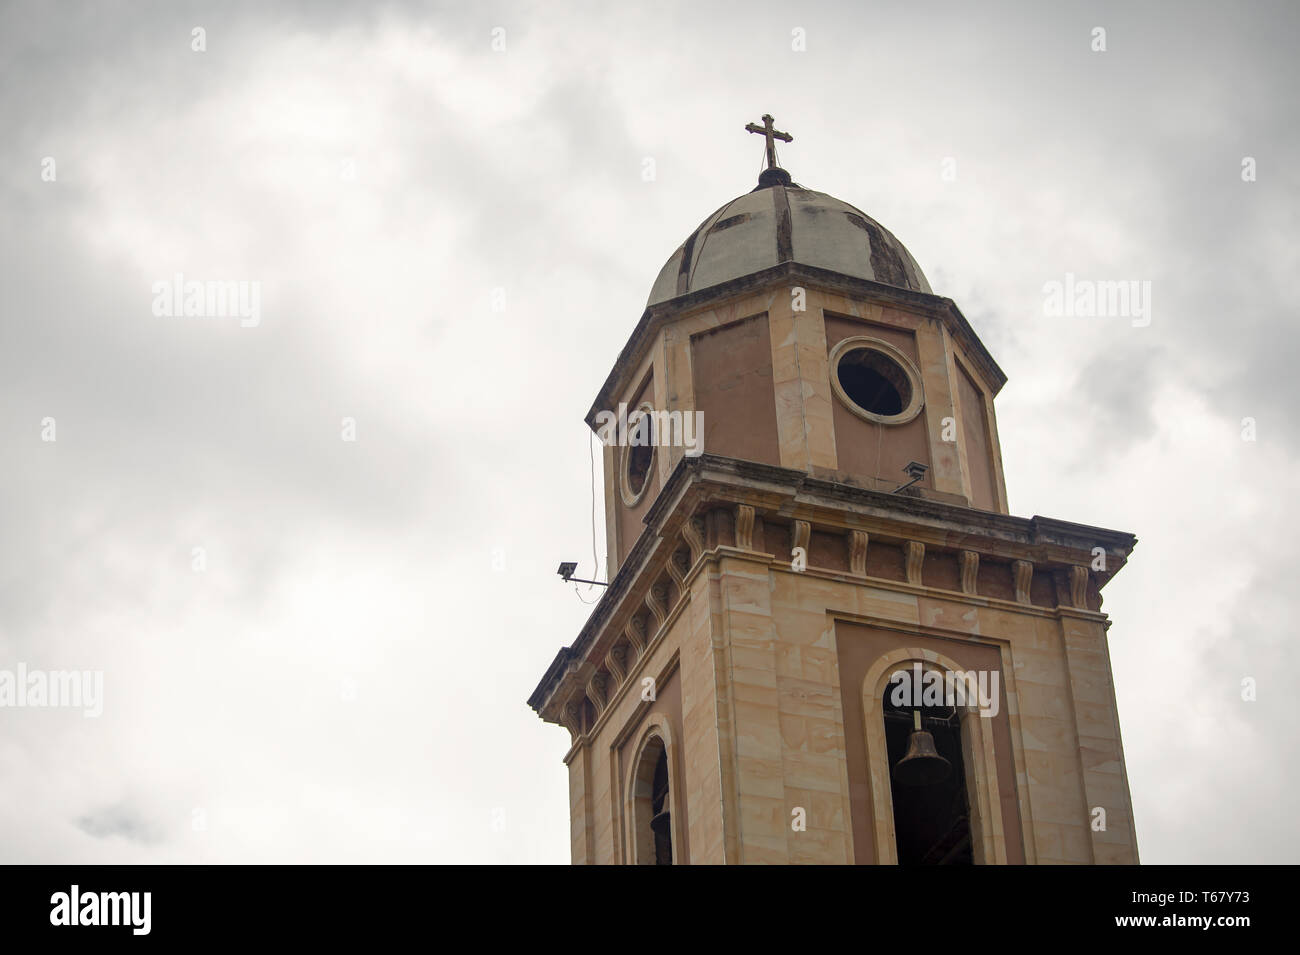 Bell tower of the colonial church of Iza, an old town in the Andean mountains of central Colombia, captured against the overcasted sky. Stock Photo